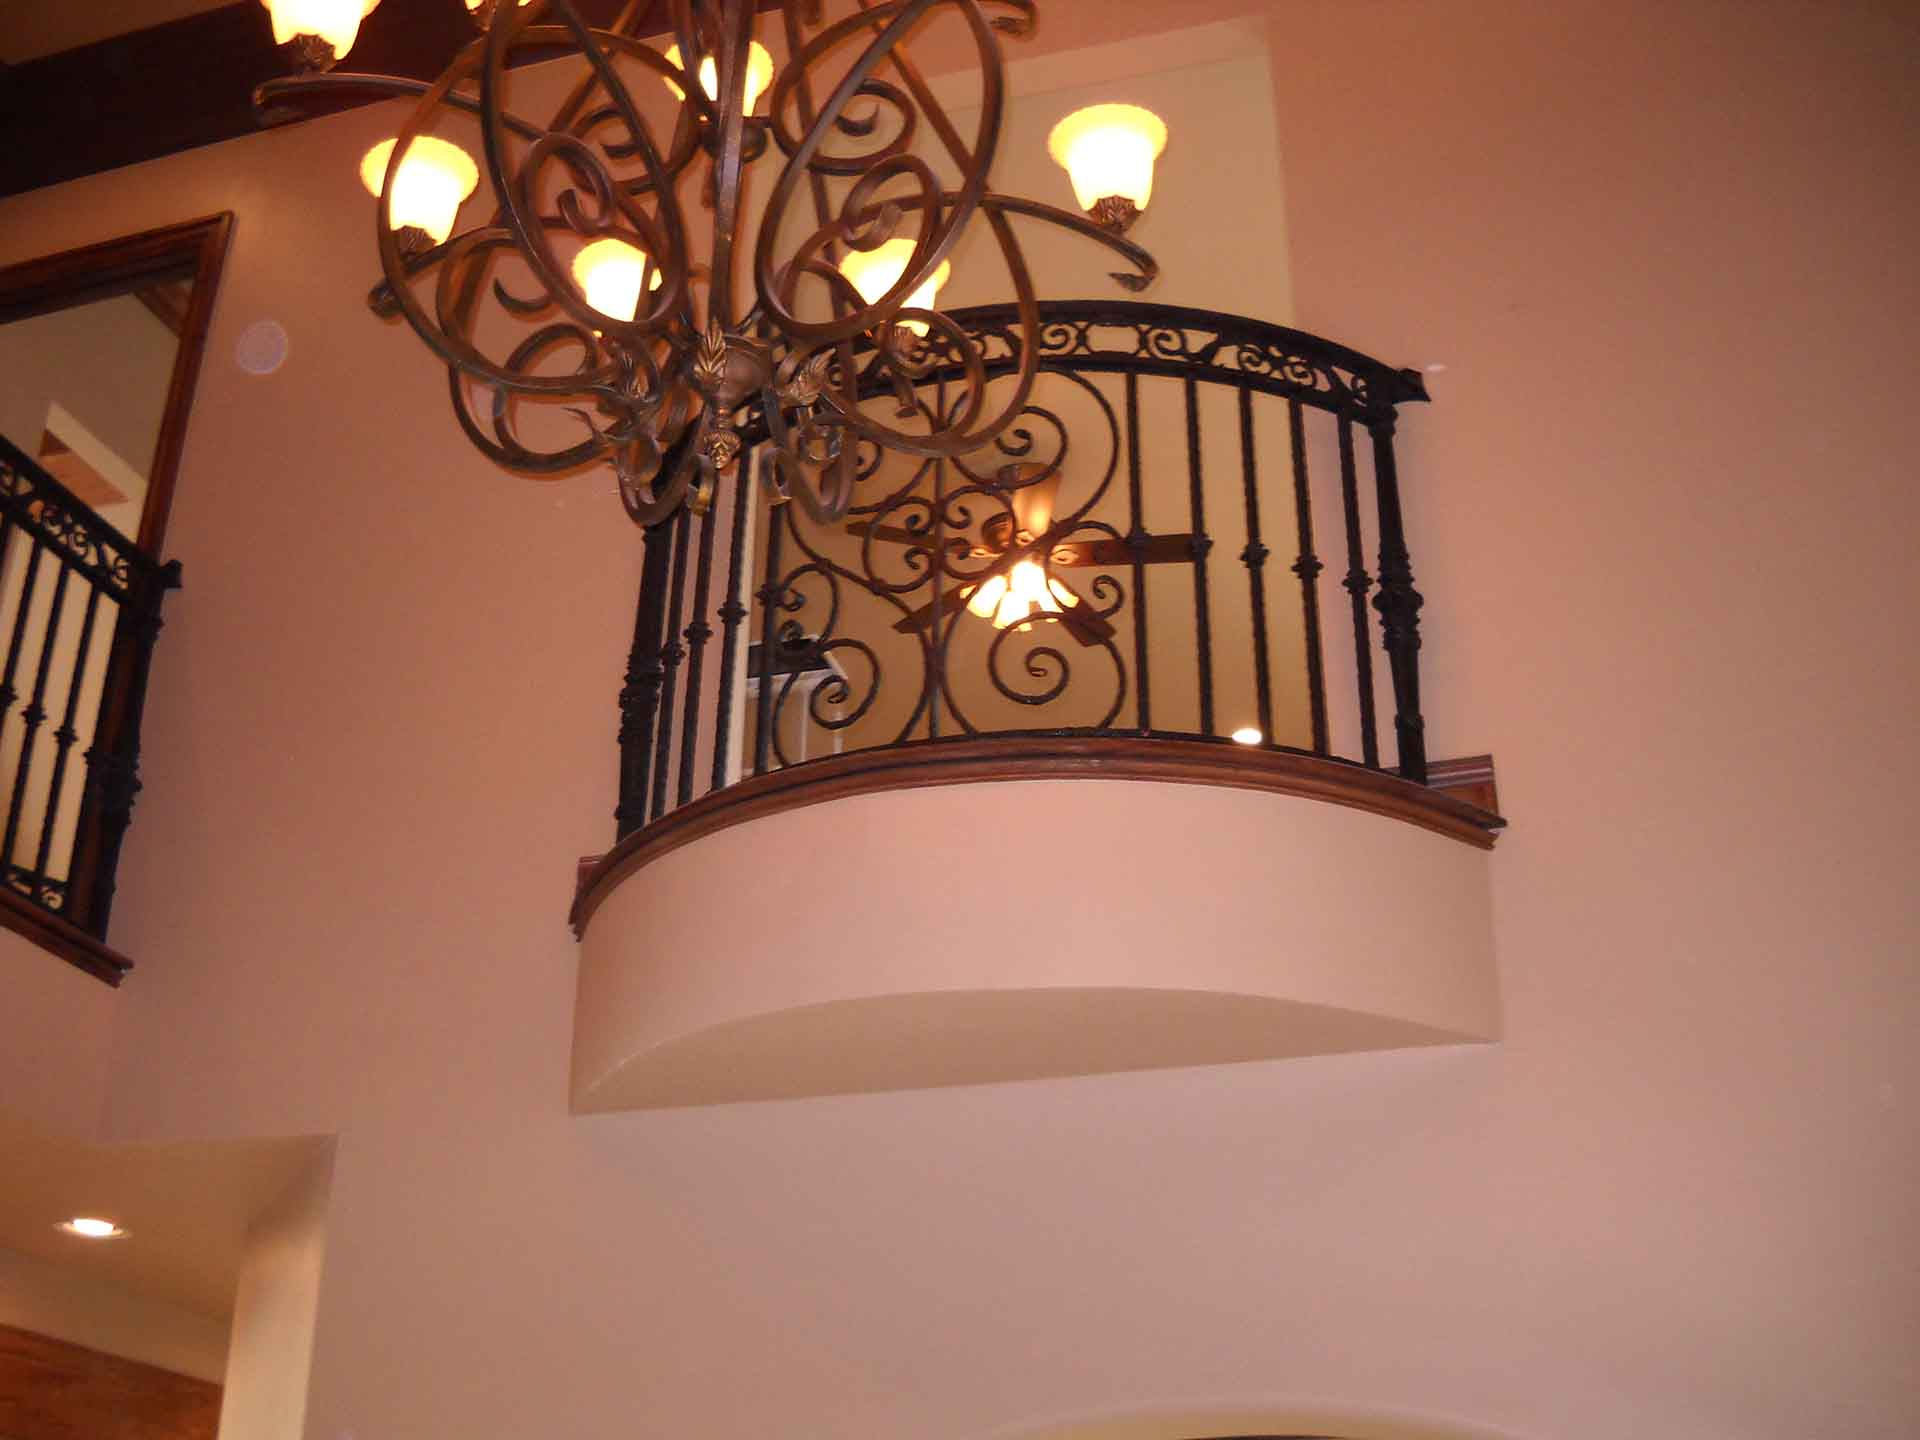 Old World Iron in the leading manufacturer of Iron Gates, Iron Railing, Wrought Iron, Wrought Iron Railing, Wrought Iron Fence, Custom Mail boxes, Iron Window Boxes, Decorative Iron, Ornamental Iron